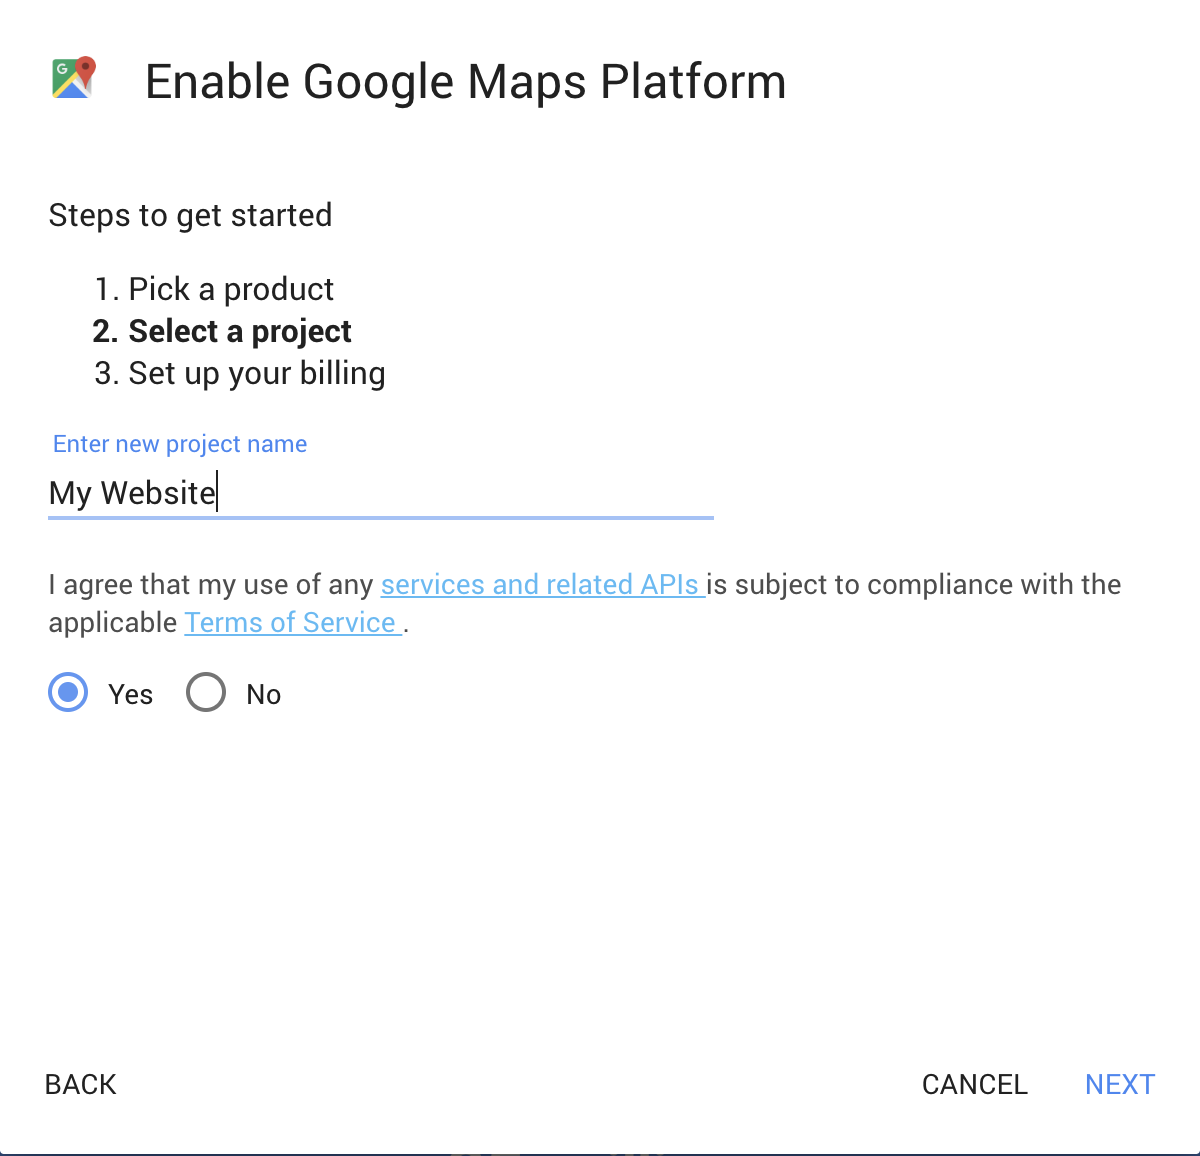 Google Maps Platform Walkthrough Step 2